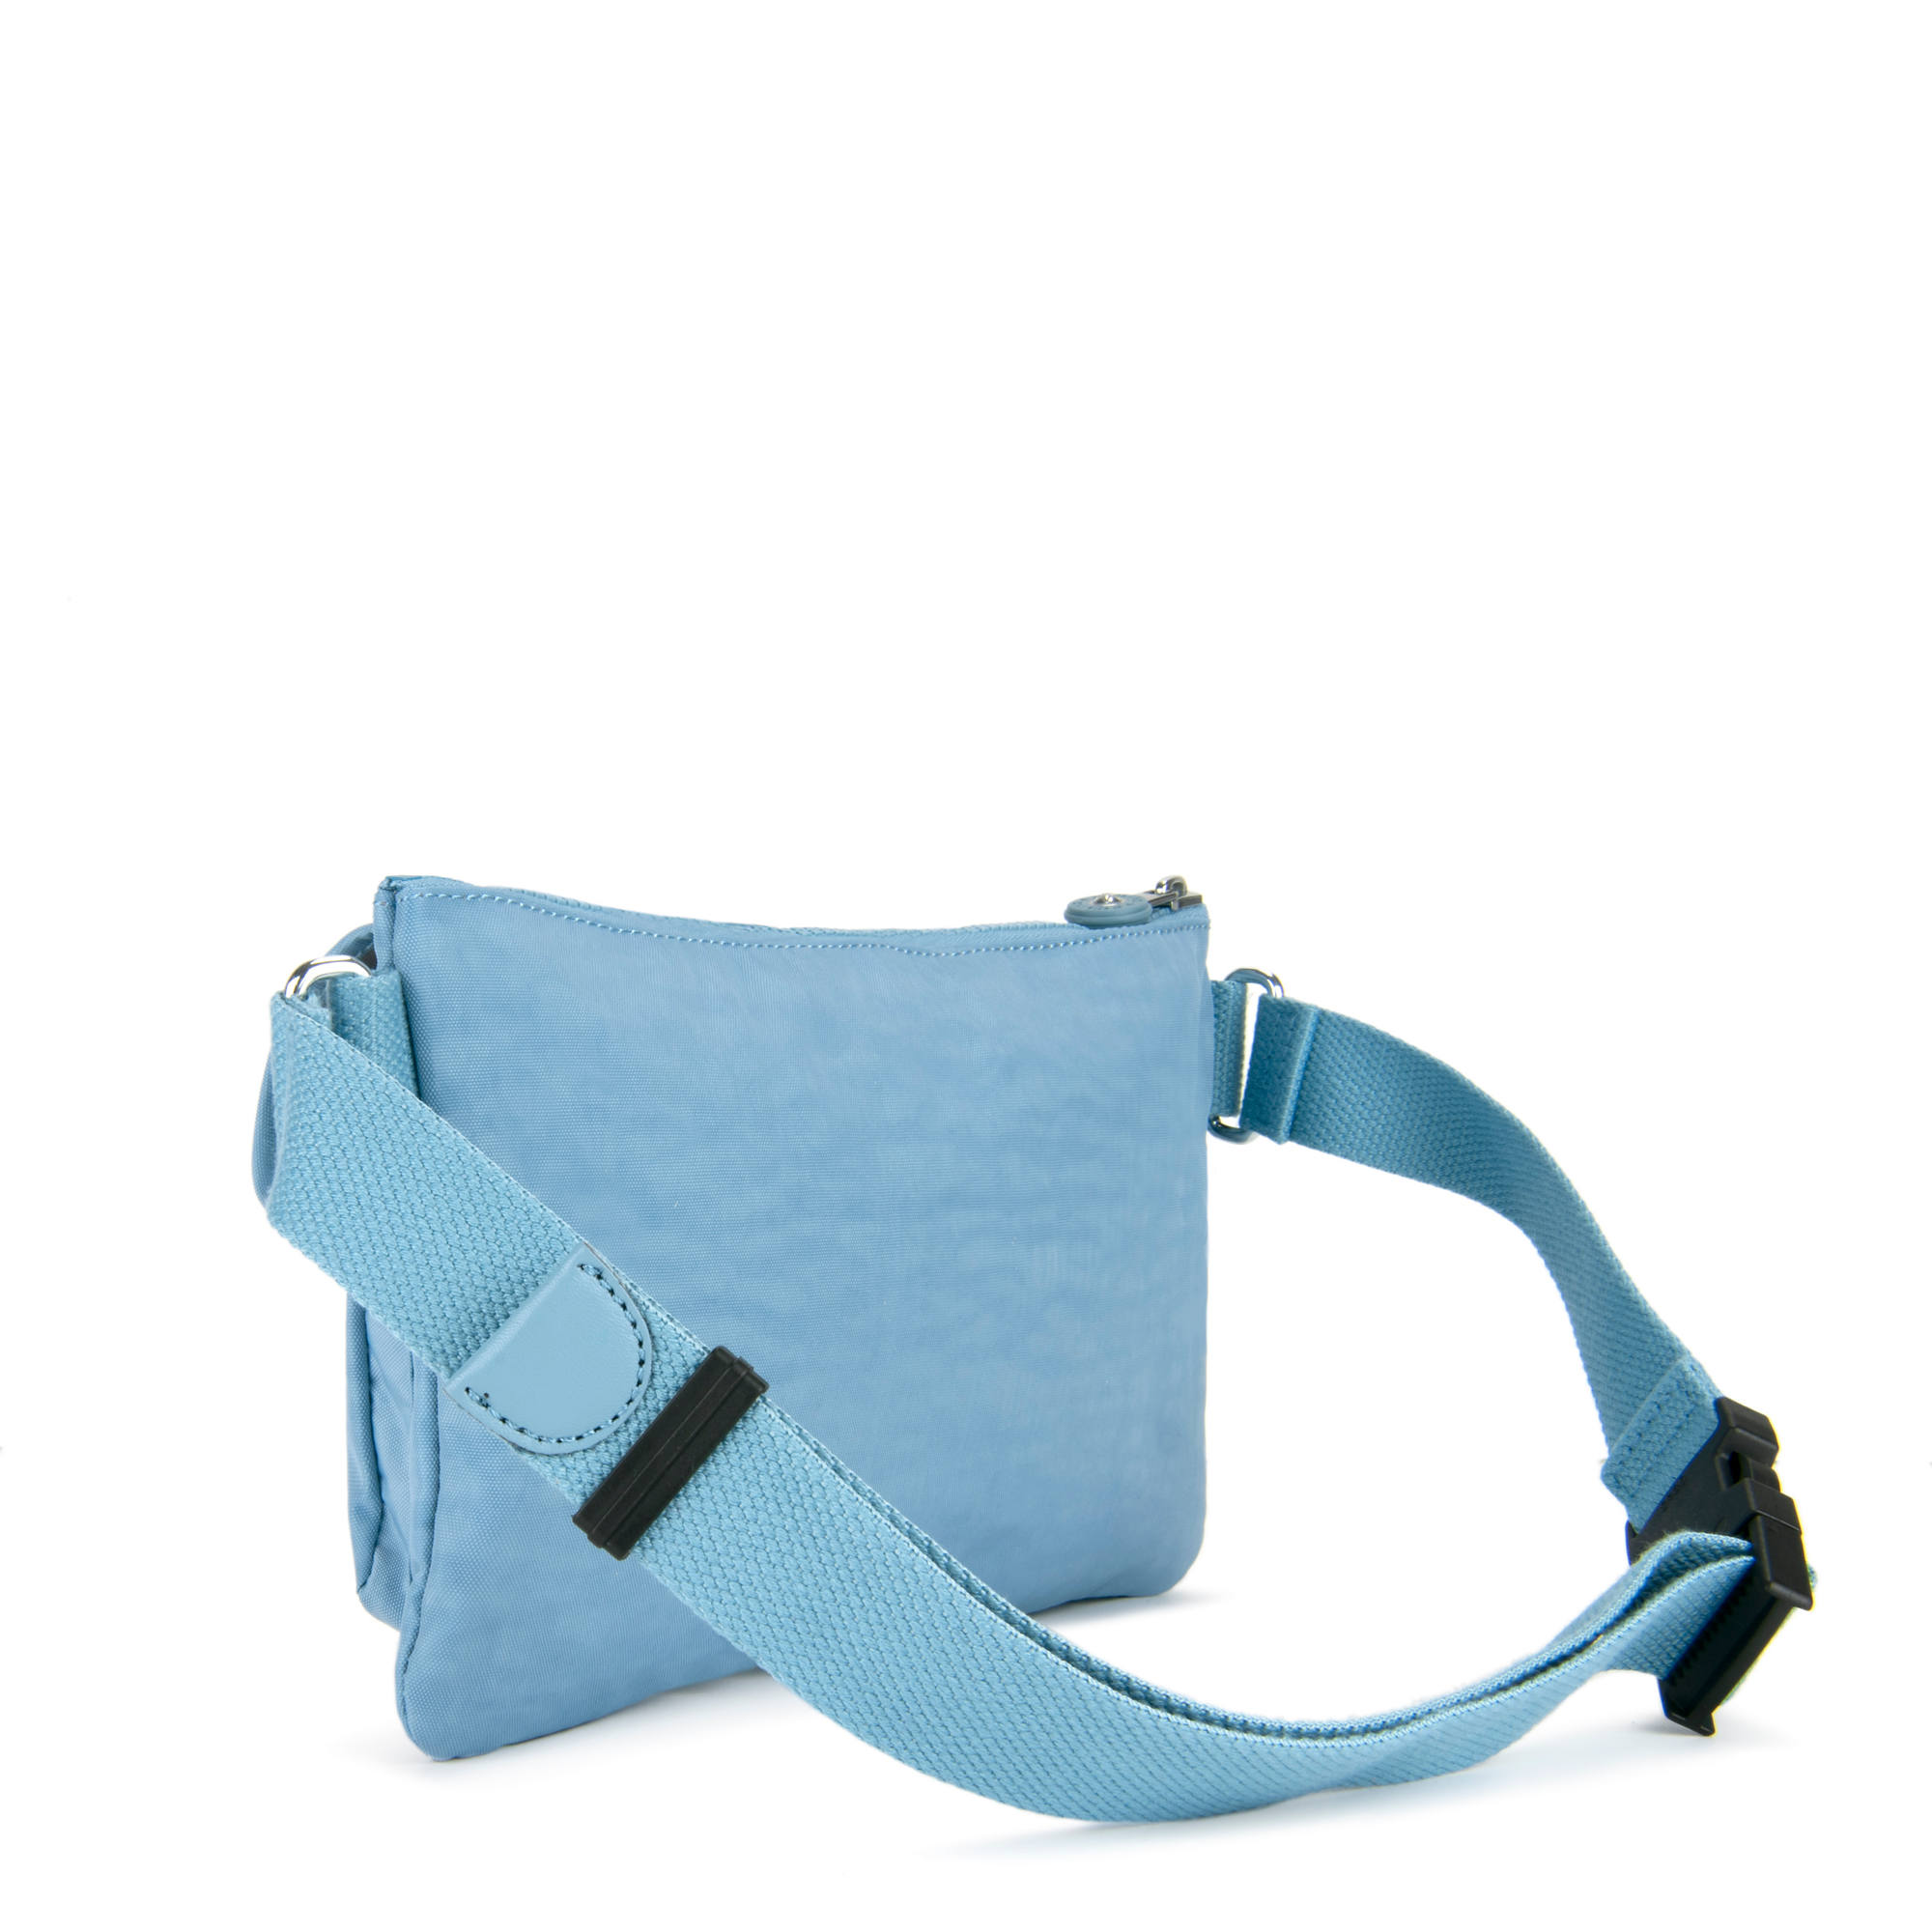 63703a602 Presto Fanny Pack,Blue Beam Tonal Zipper,large